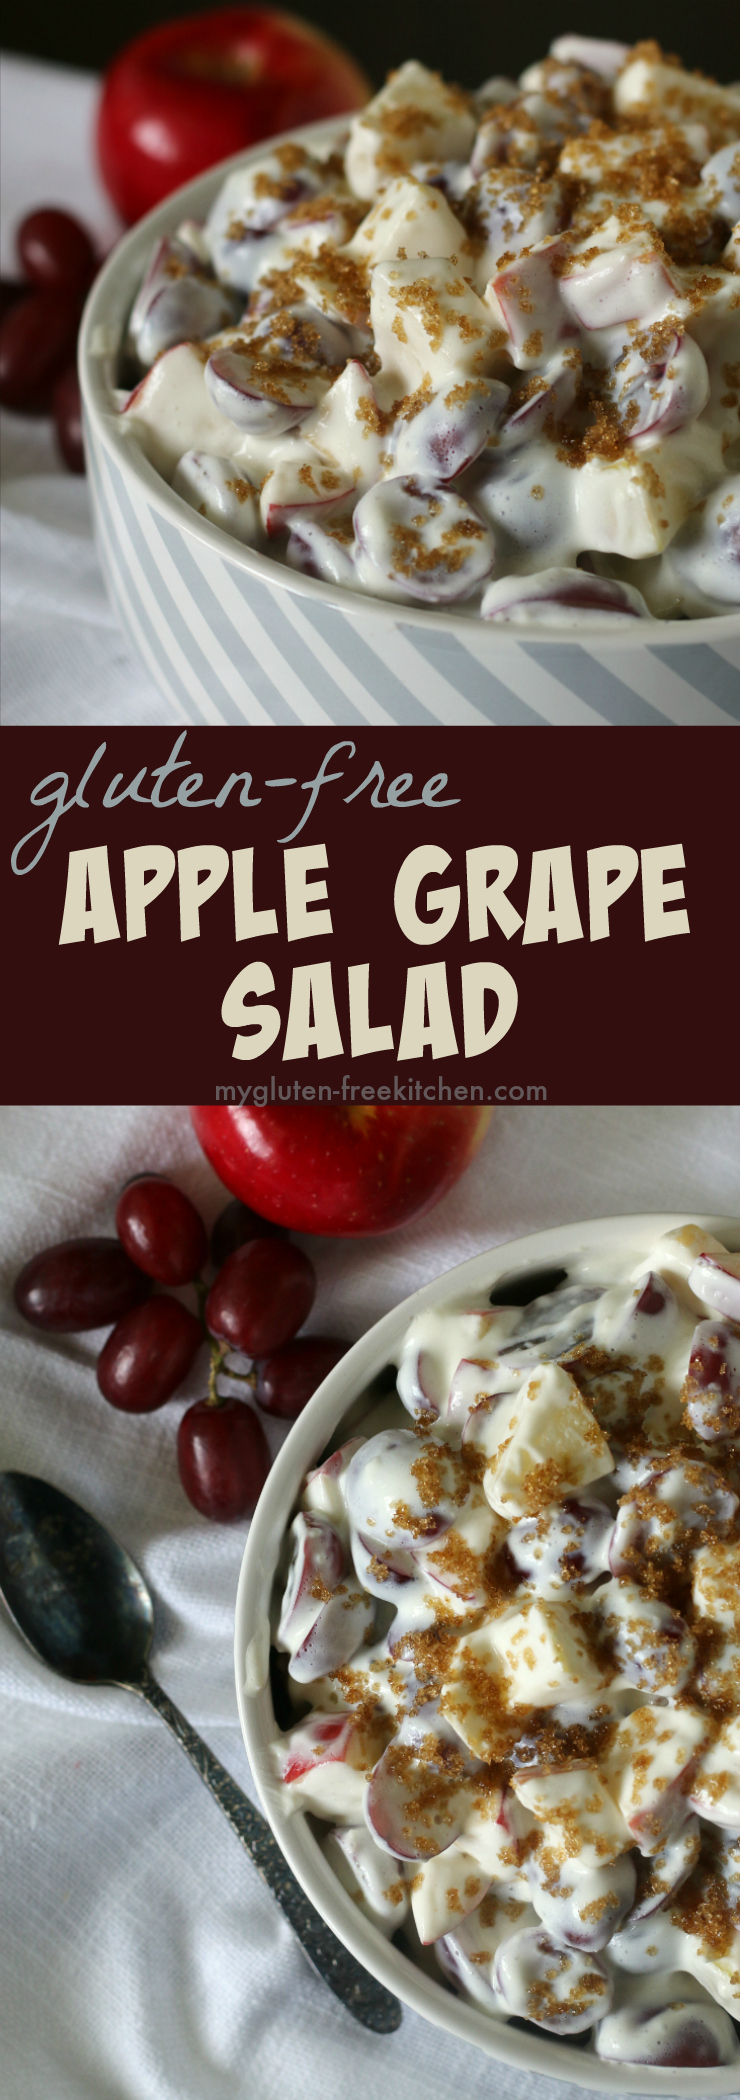 Apple Grape Salad naturally gluten-free recipe. Favorite side dish throughout the year!